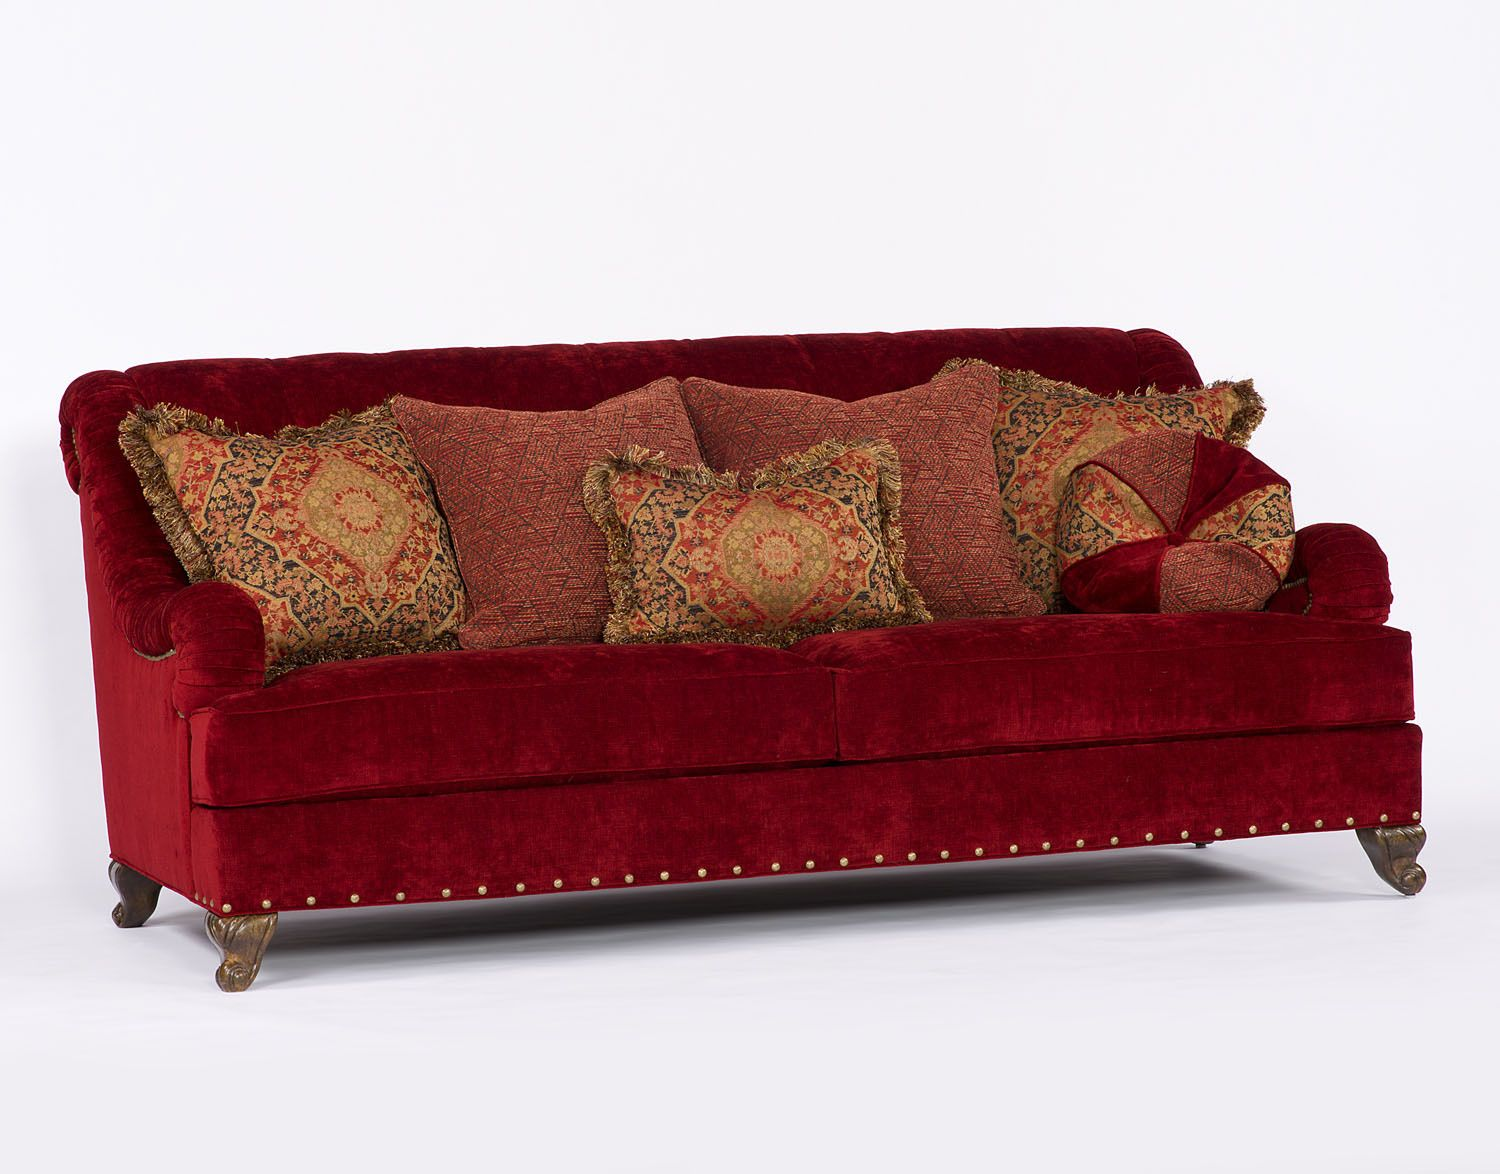 Valentino Sofa by Paul Robert - Home Gallery Stores | Furniture ...